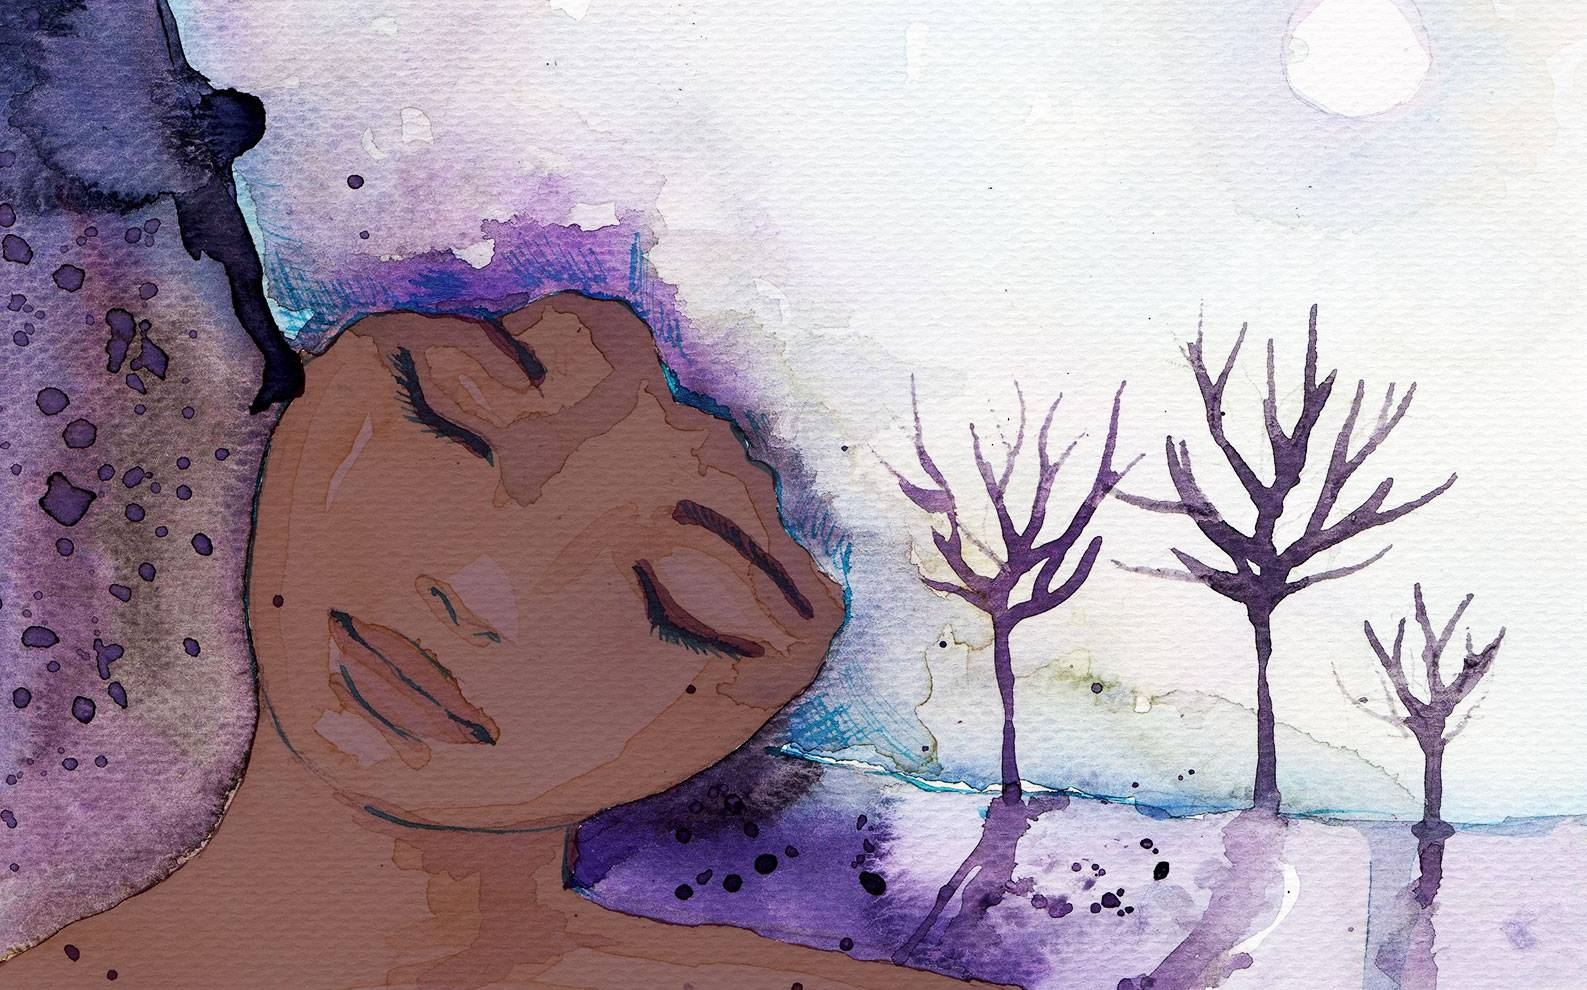 A painting of a darker skinned woman with her head titled to her left, her eyes are closed and a dream is sprouting from her head in the shape of her curly, natural hair. The dream seems to be of 3 stark trees lit by a purplish moon or sun. The texture of the piece is canvas and paint daubs.